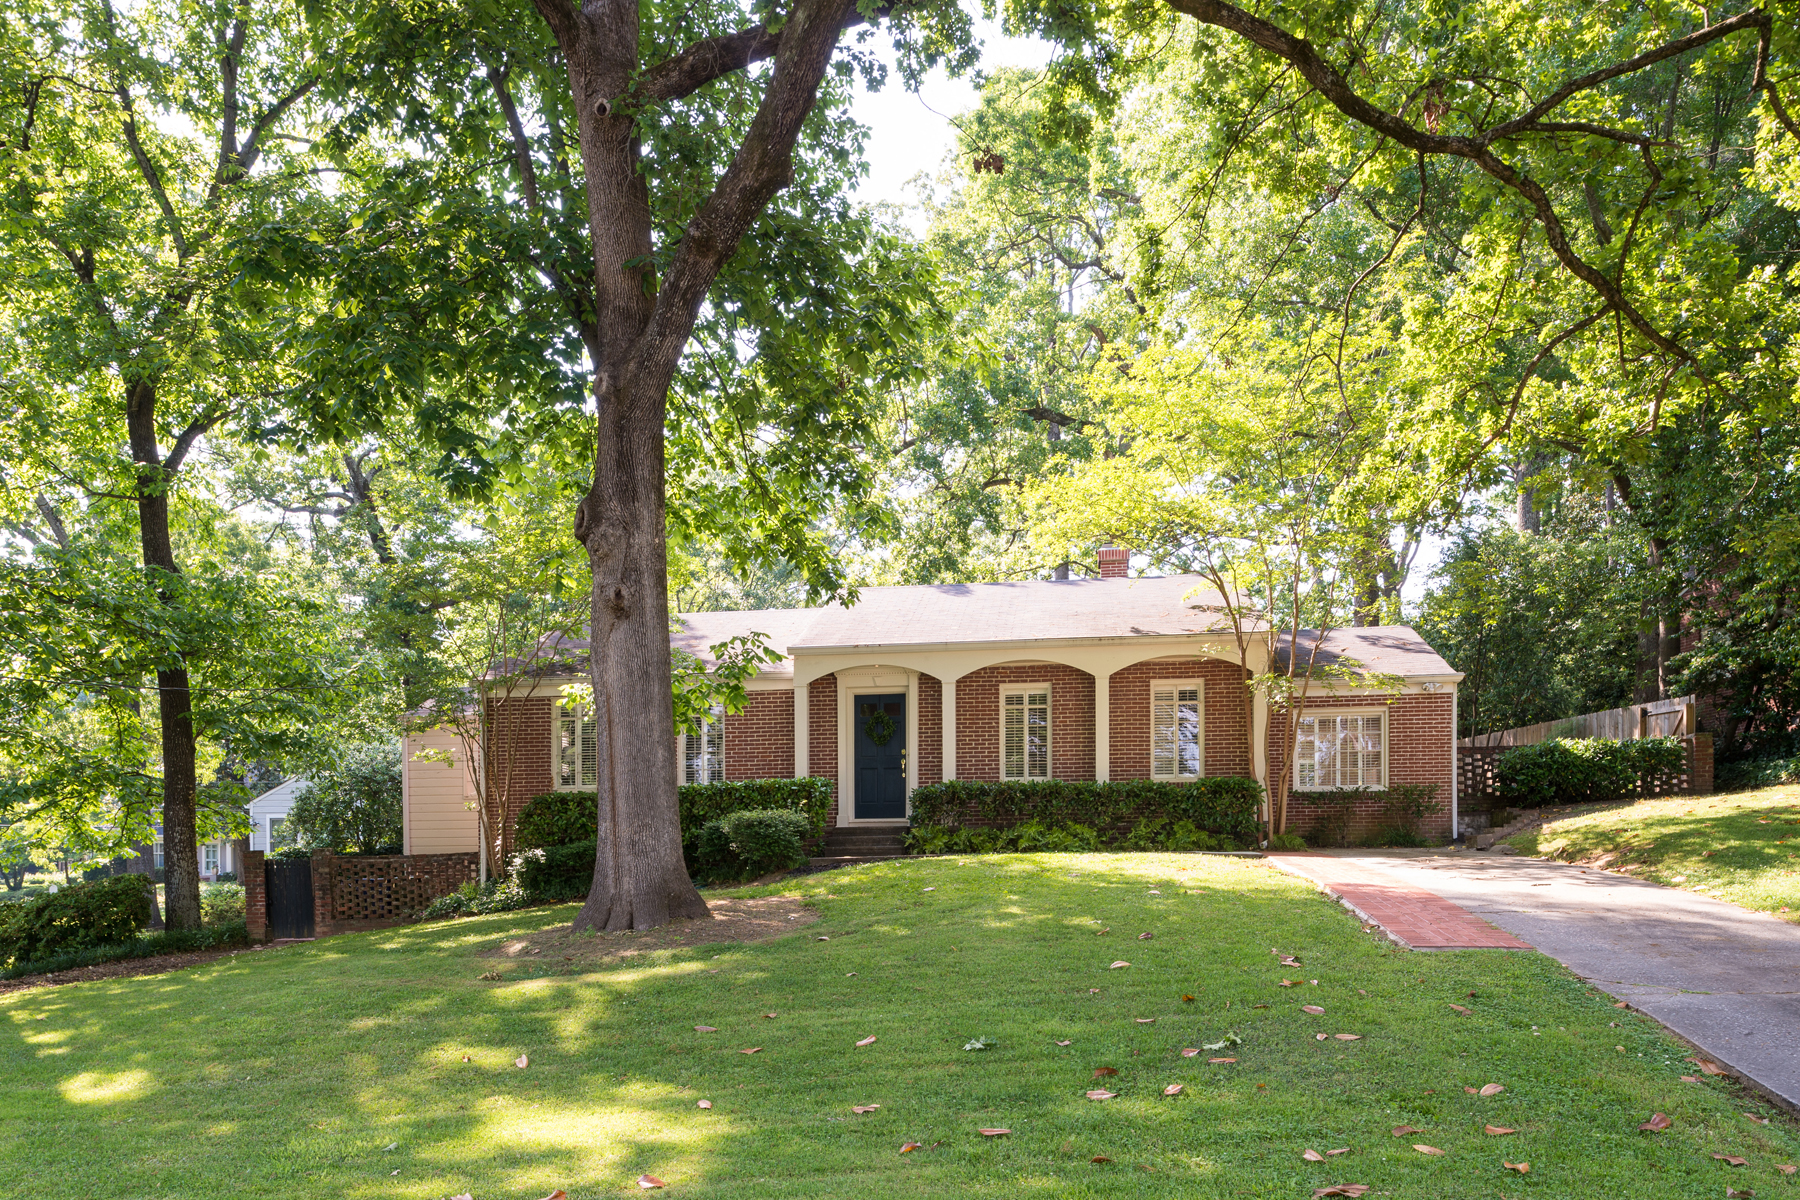 Single Family Home for Sale at Charming Cottage In Coveted Collier Hills 1794 Walthall Drive NW Atlanta, Georgia 30318 United States